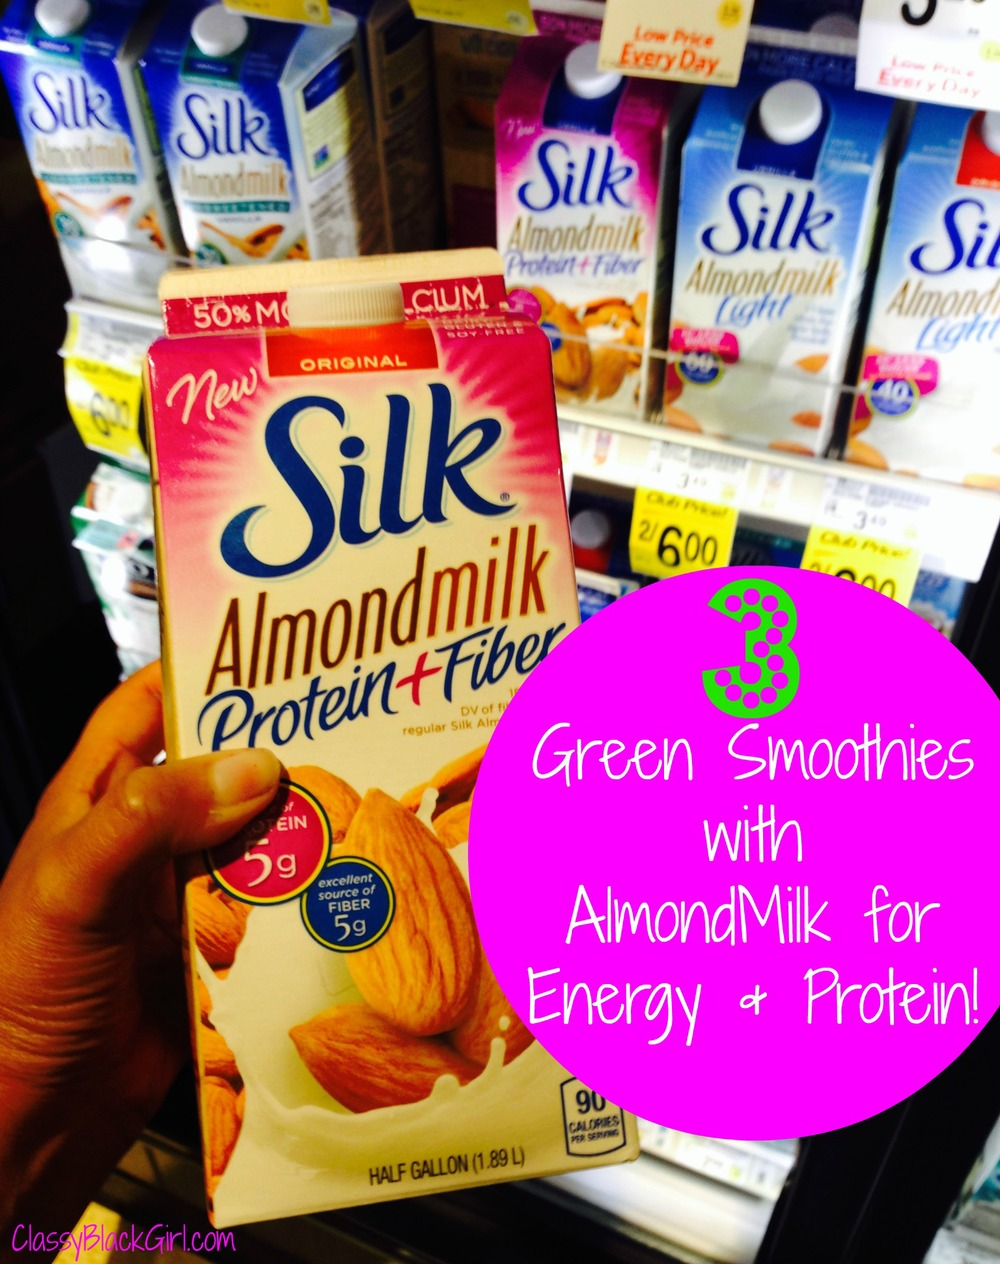 almondmilk-silk-green-smoothies-protein-hero.jpg